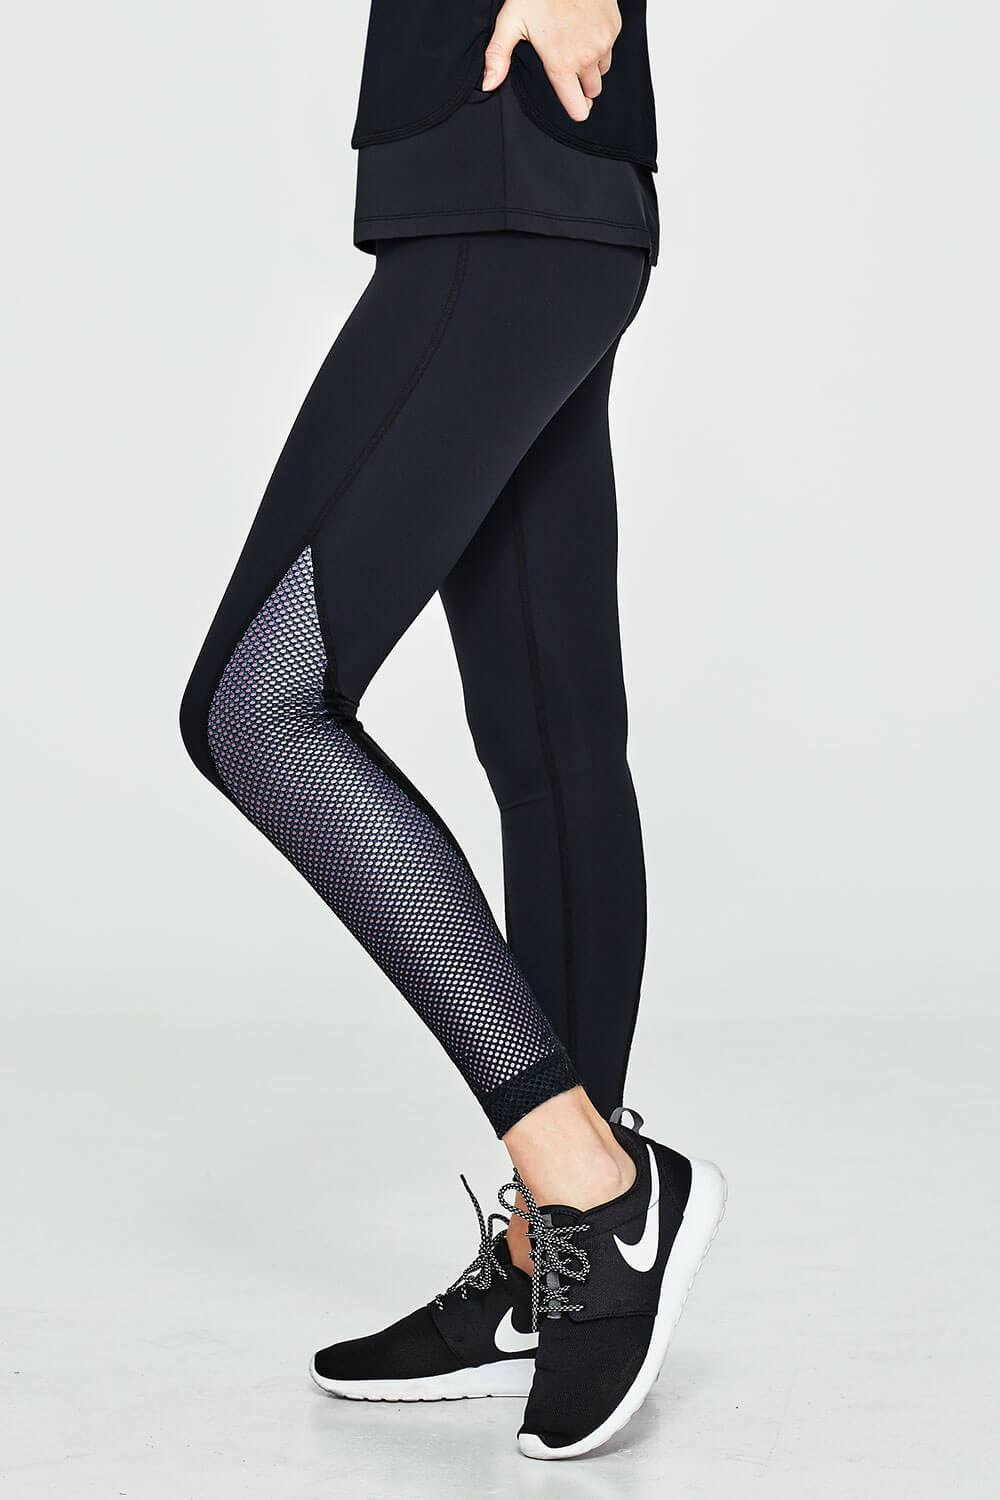 7db5e049c2c4f Arcam Mesh Leggings - Tonic Lifestyle Apparel - My Legwear Shop